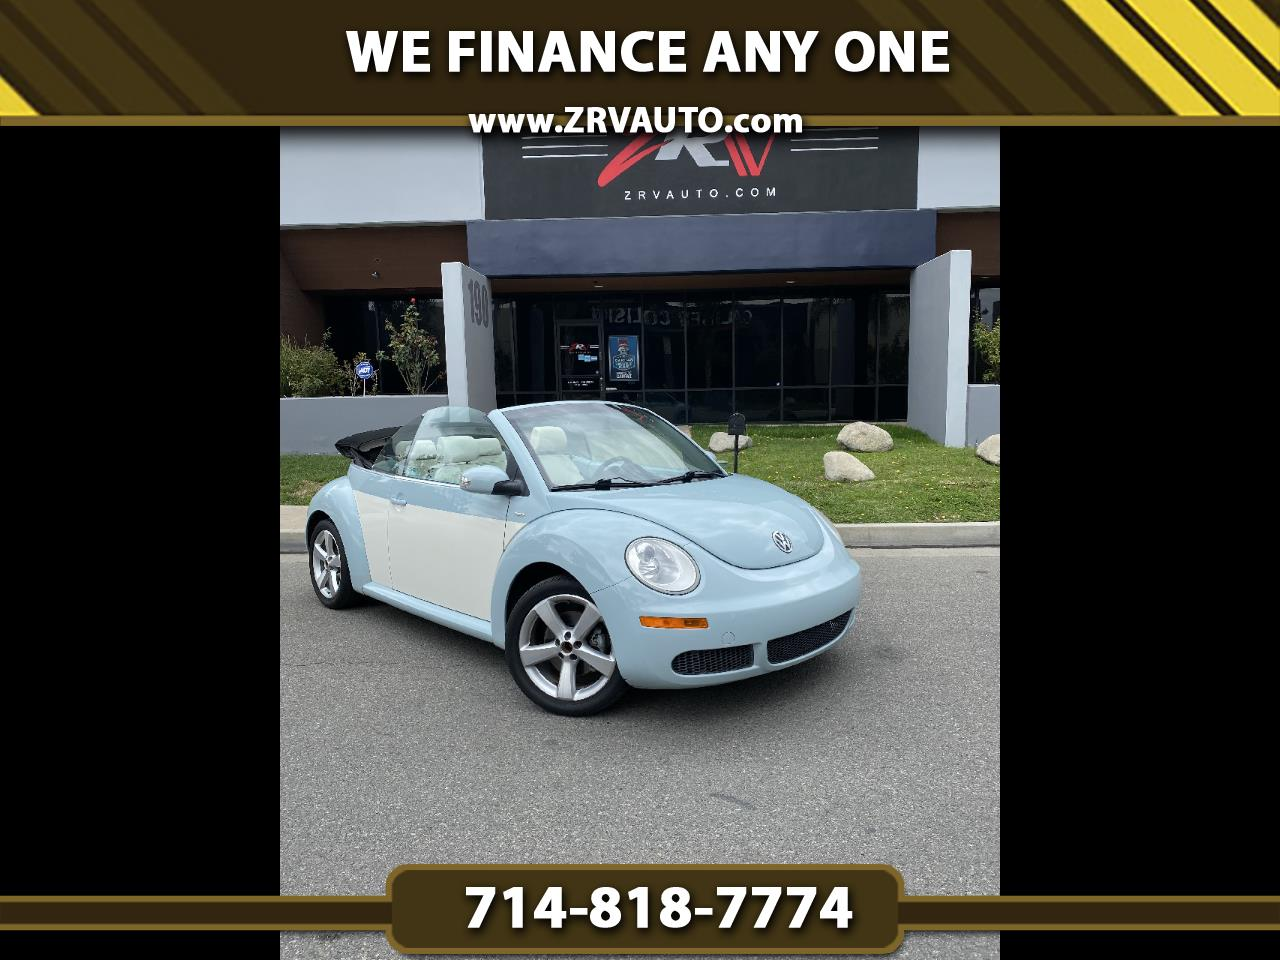 Volkswagen New Beetle Convertible 2dr Auto Final Edition PZEV 2010